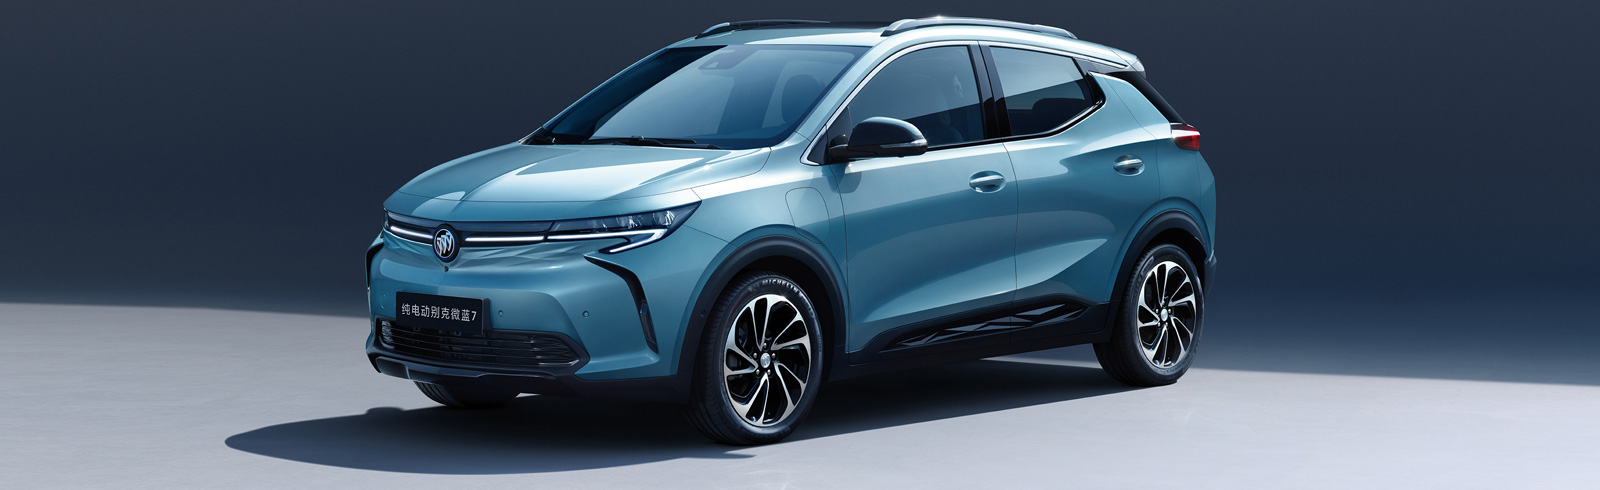 GM unveils in full the Buick Velite 7 EV in China with a range of 500 km (311 mi)